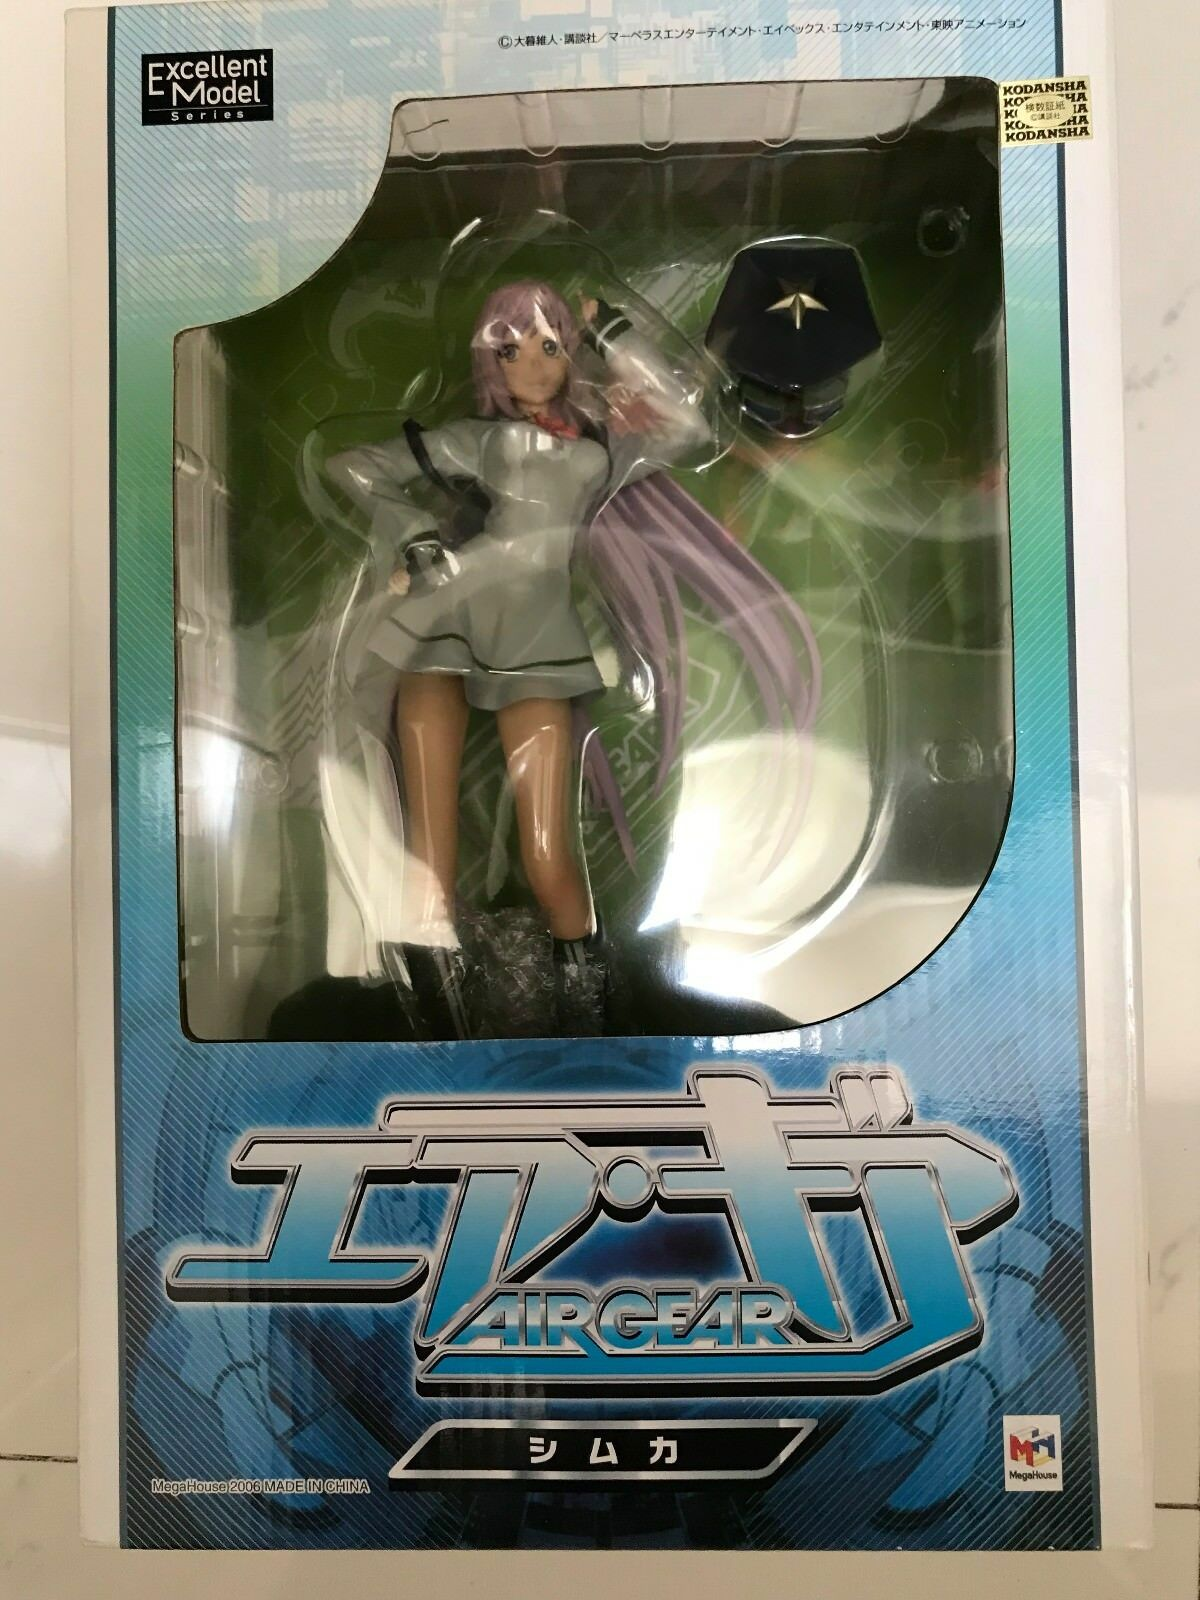 MEGAHOUSE AIR GEAR, SIMCA, 1 8 SCALE FIGURE, NEW